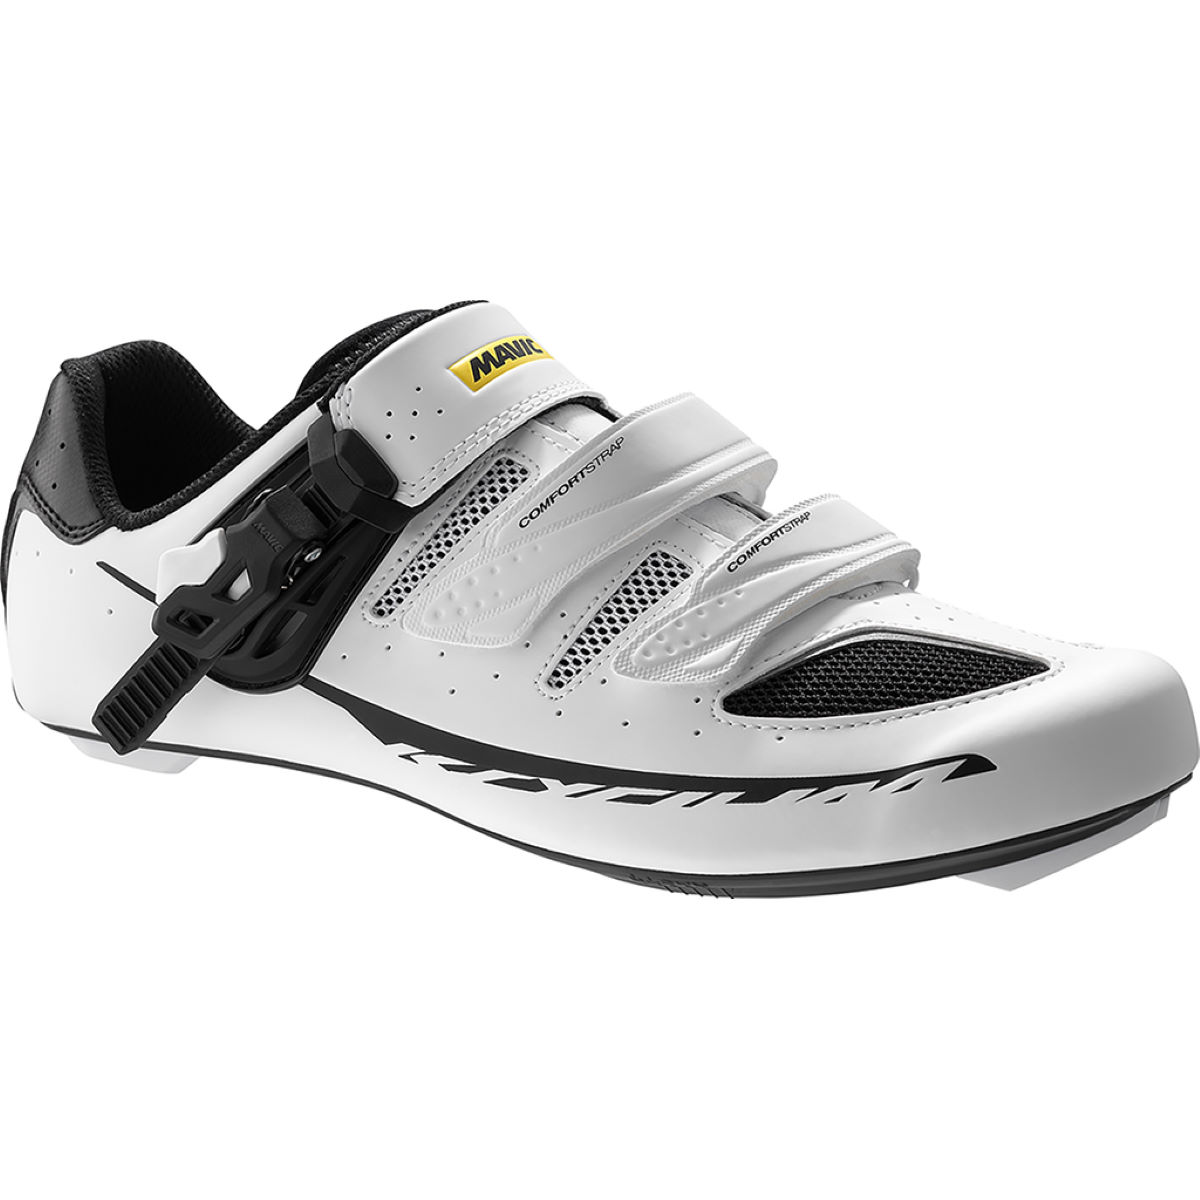 Chaussures Mavic Ksyrium Elite Maxi Fit II - 6,5 UK Blanc Chaussures de route